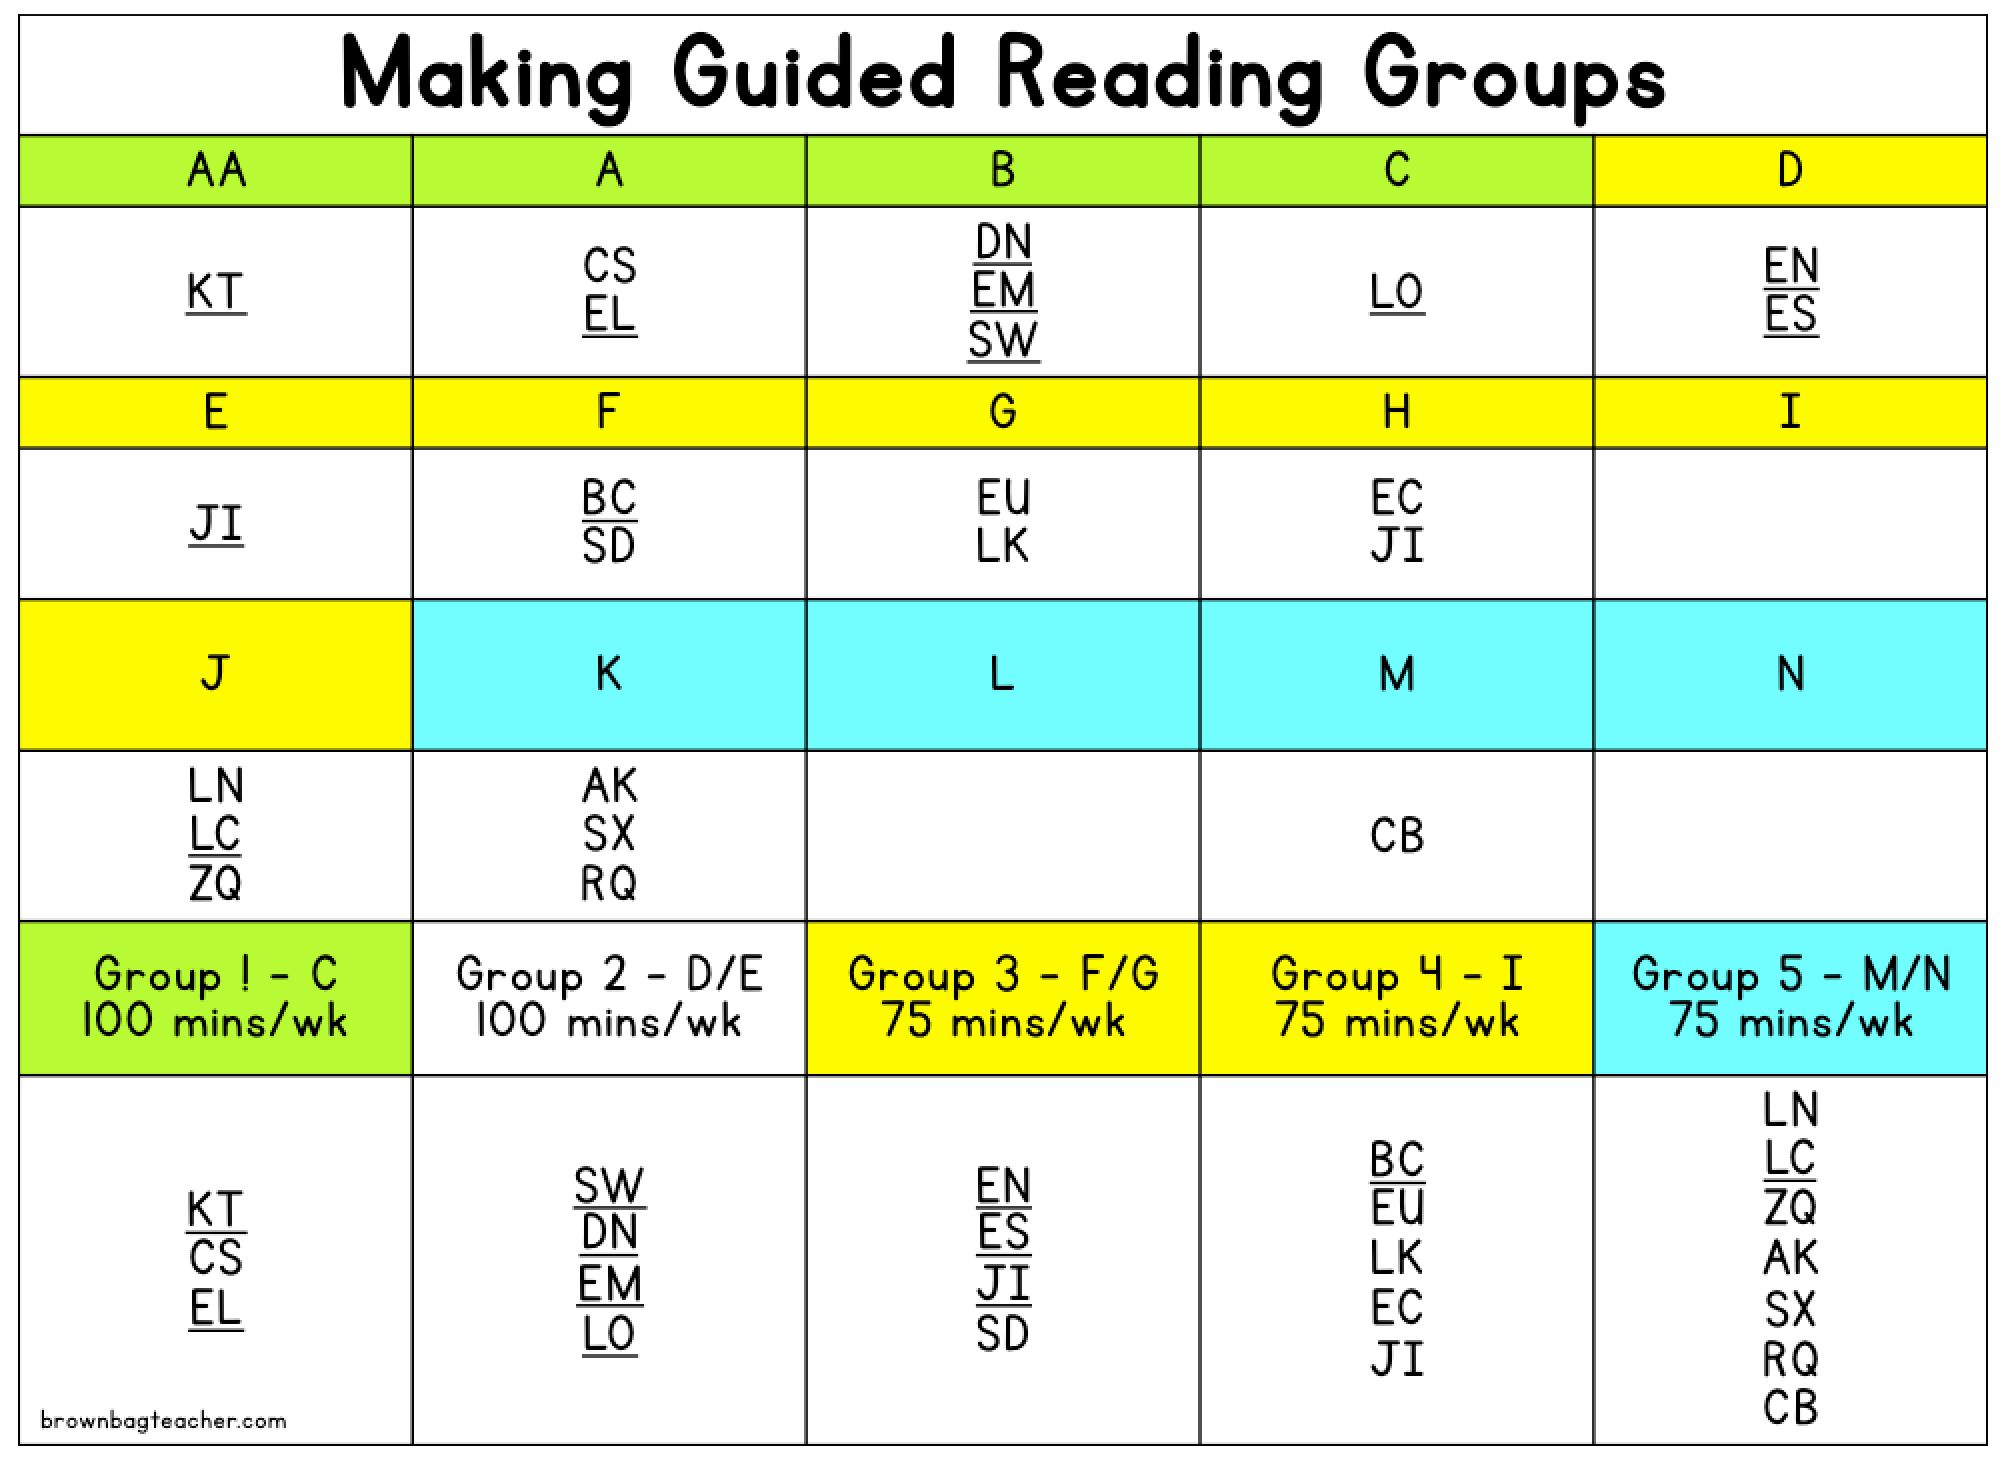 Making Guided Reading Groups